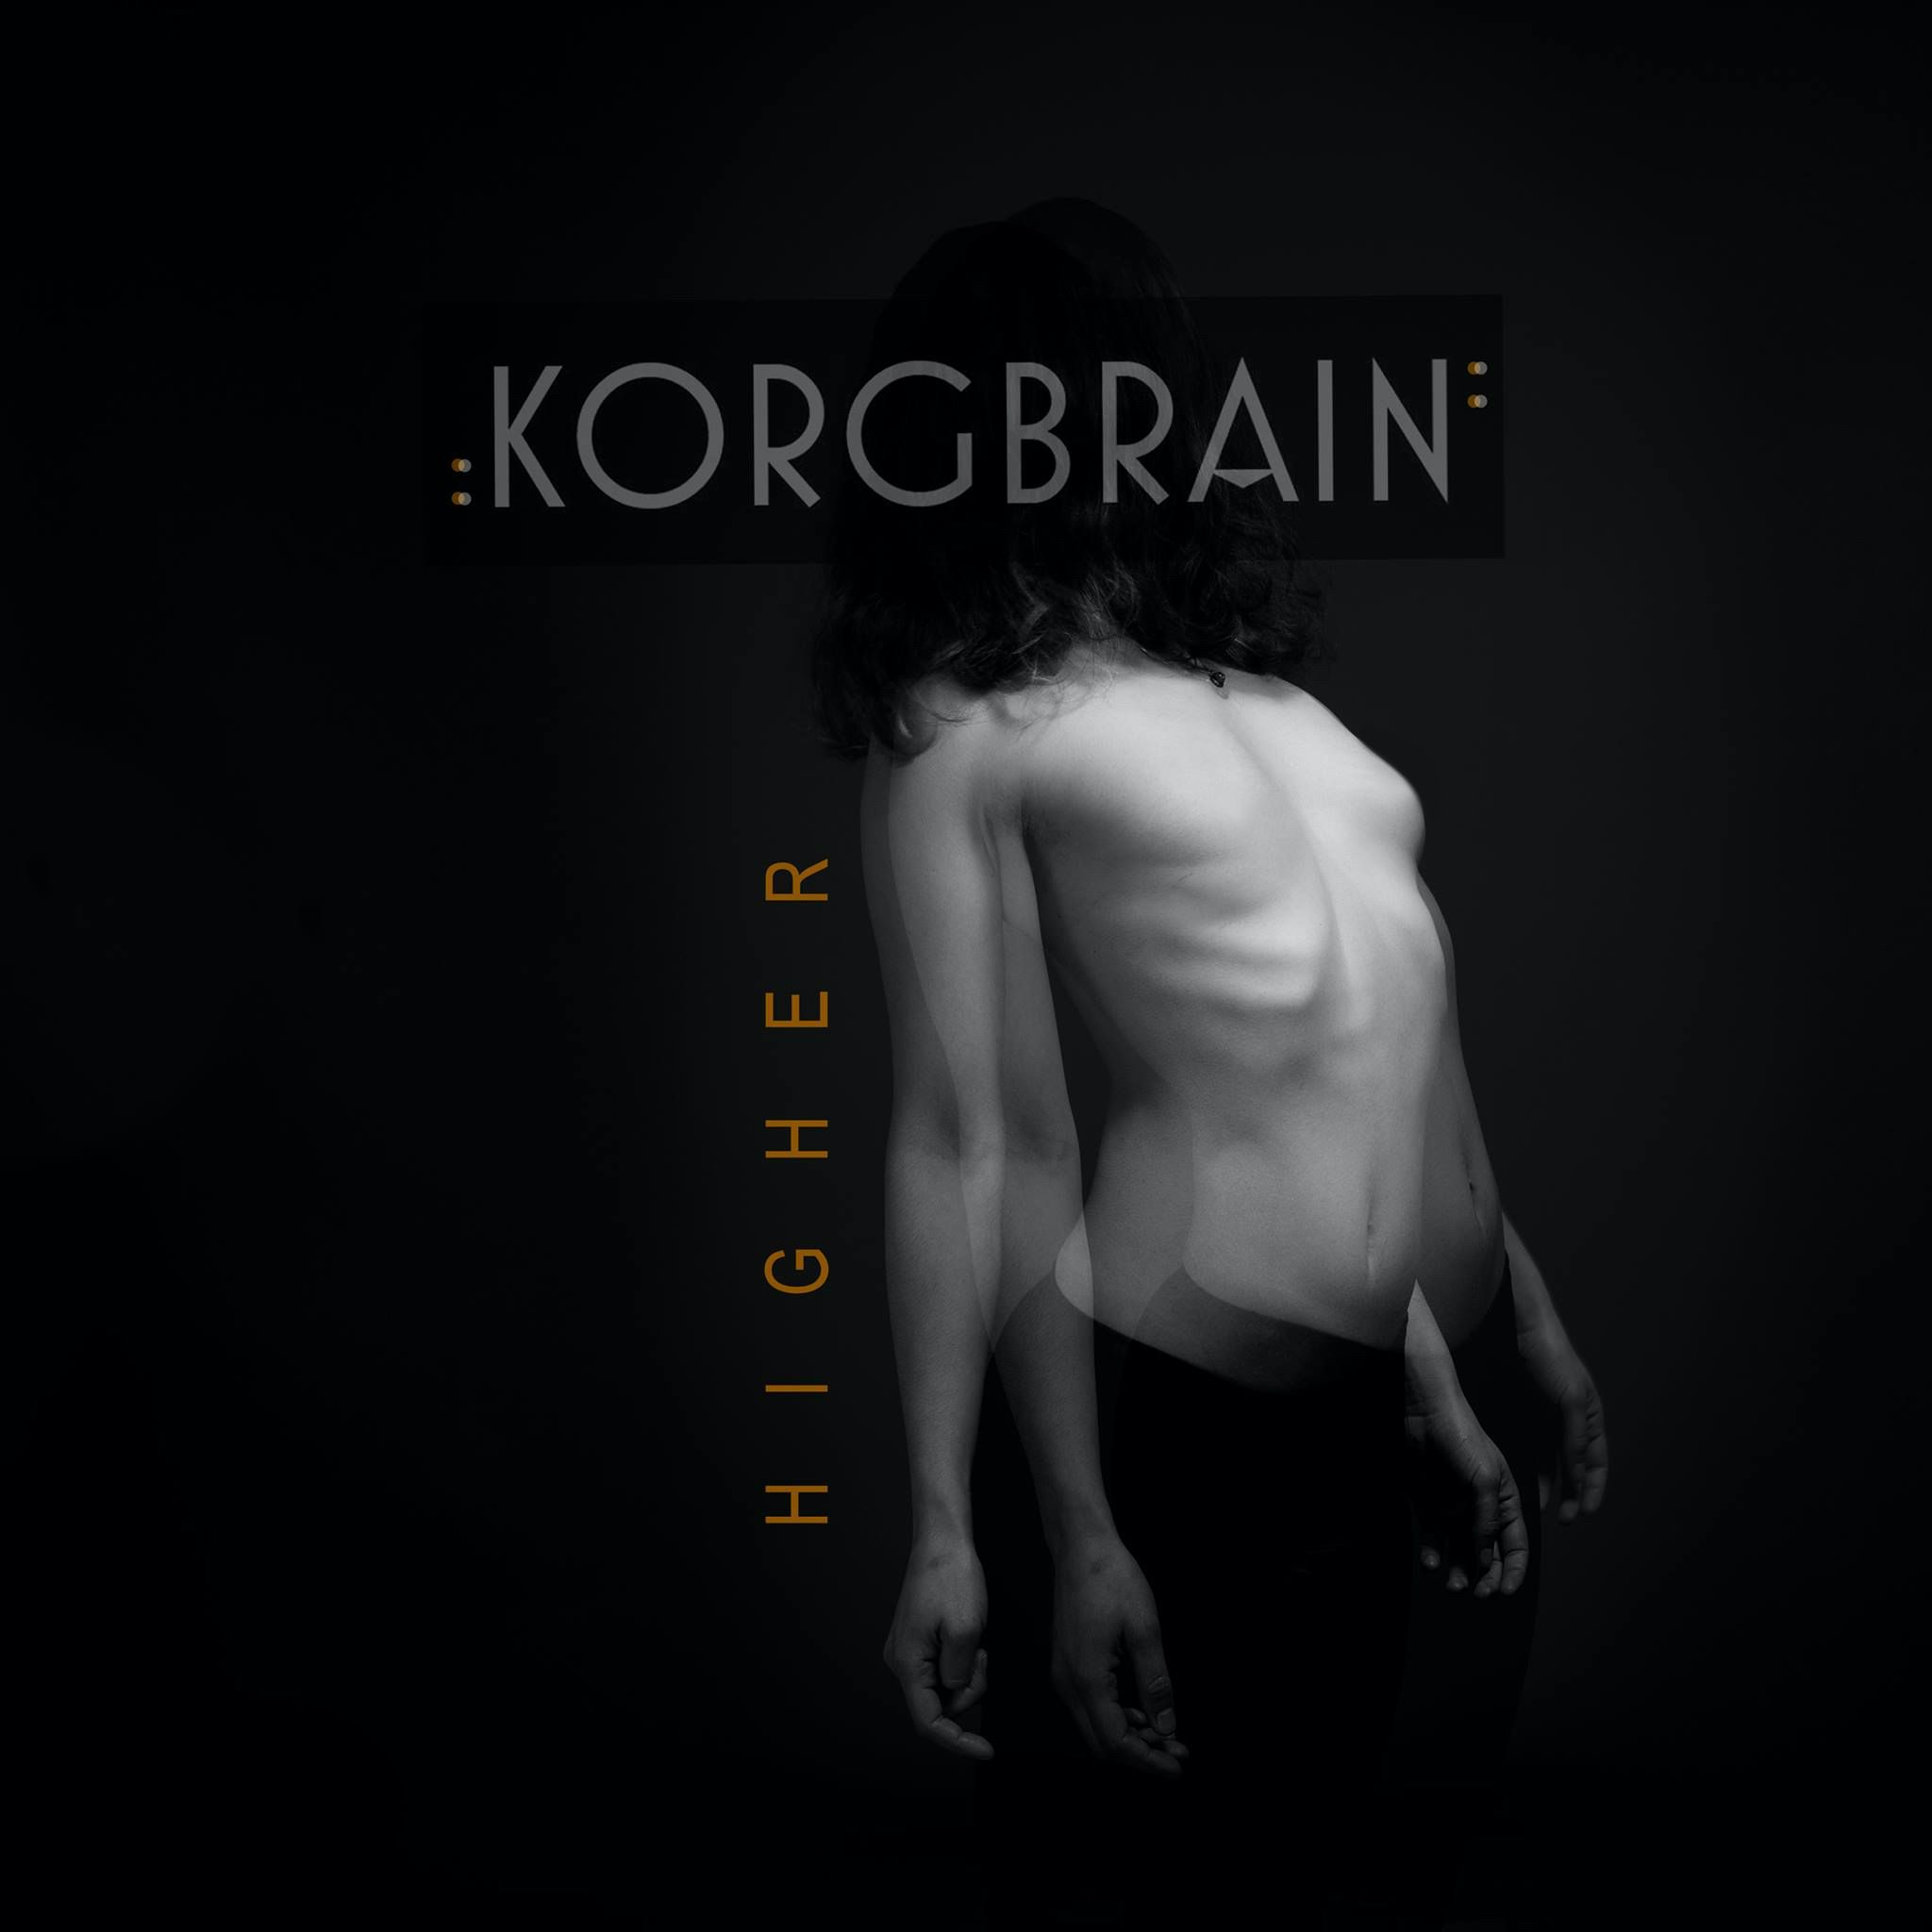 Korgbrain Higher Front (no nipples)